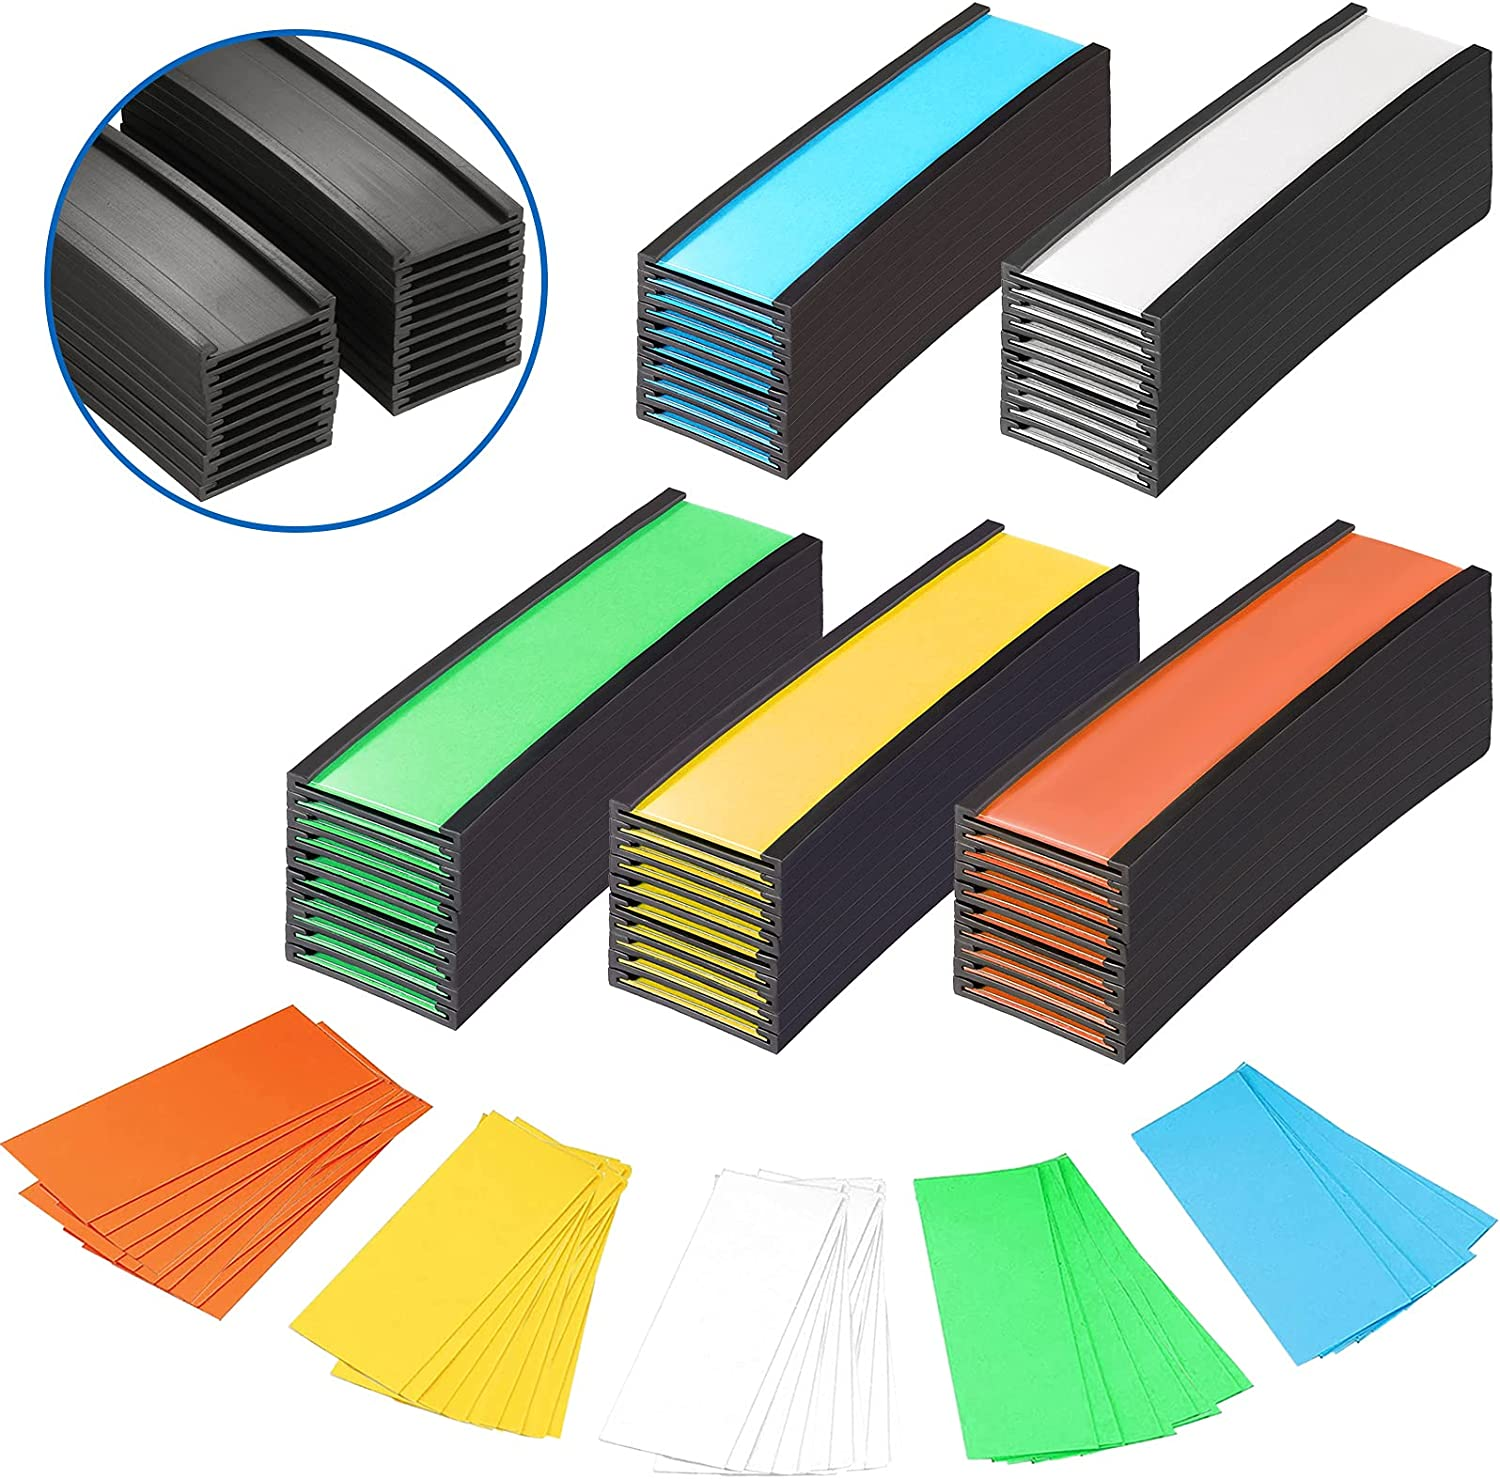 20 Pieces Magnetic Label Holders Hol Card Low price Colorful Data